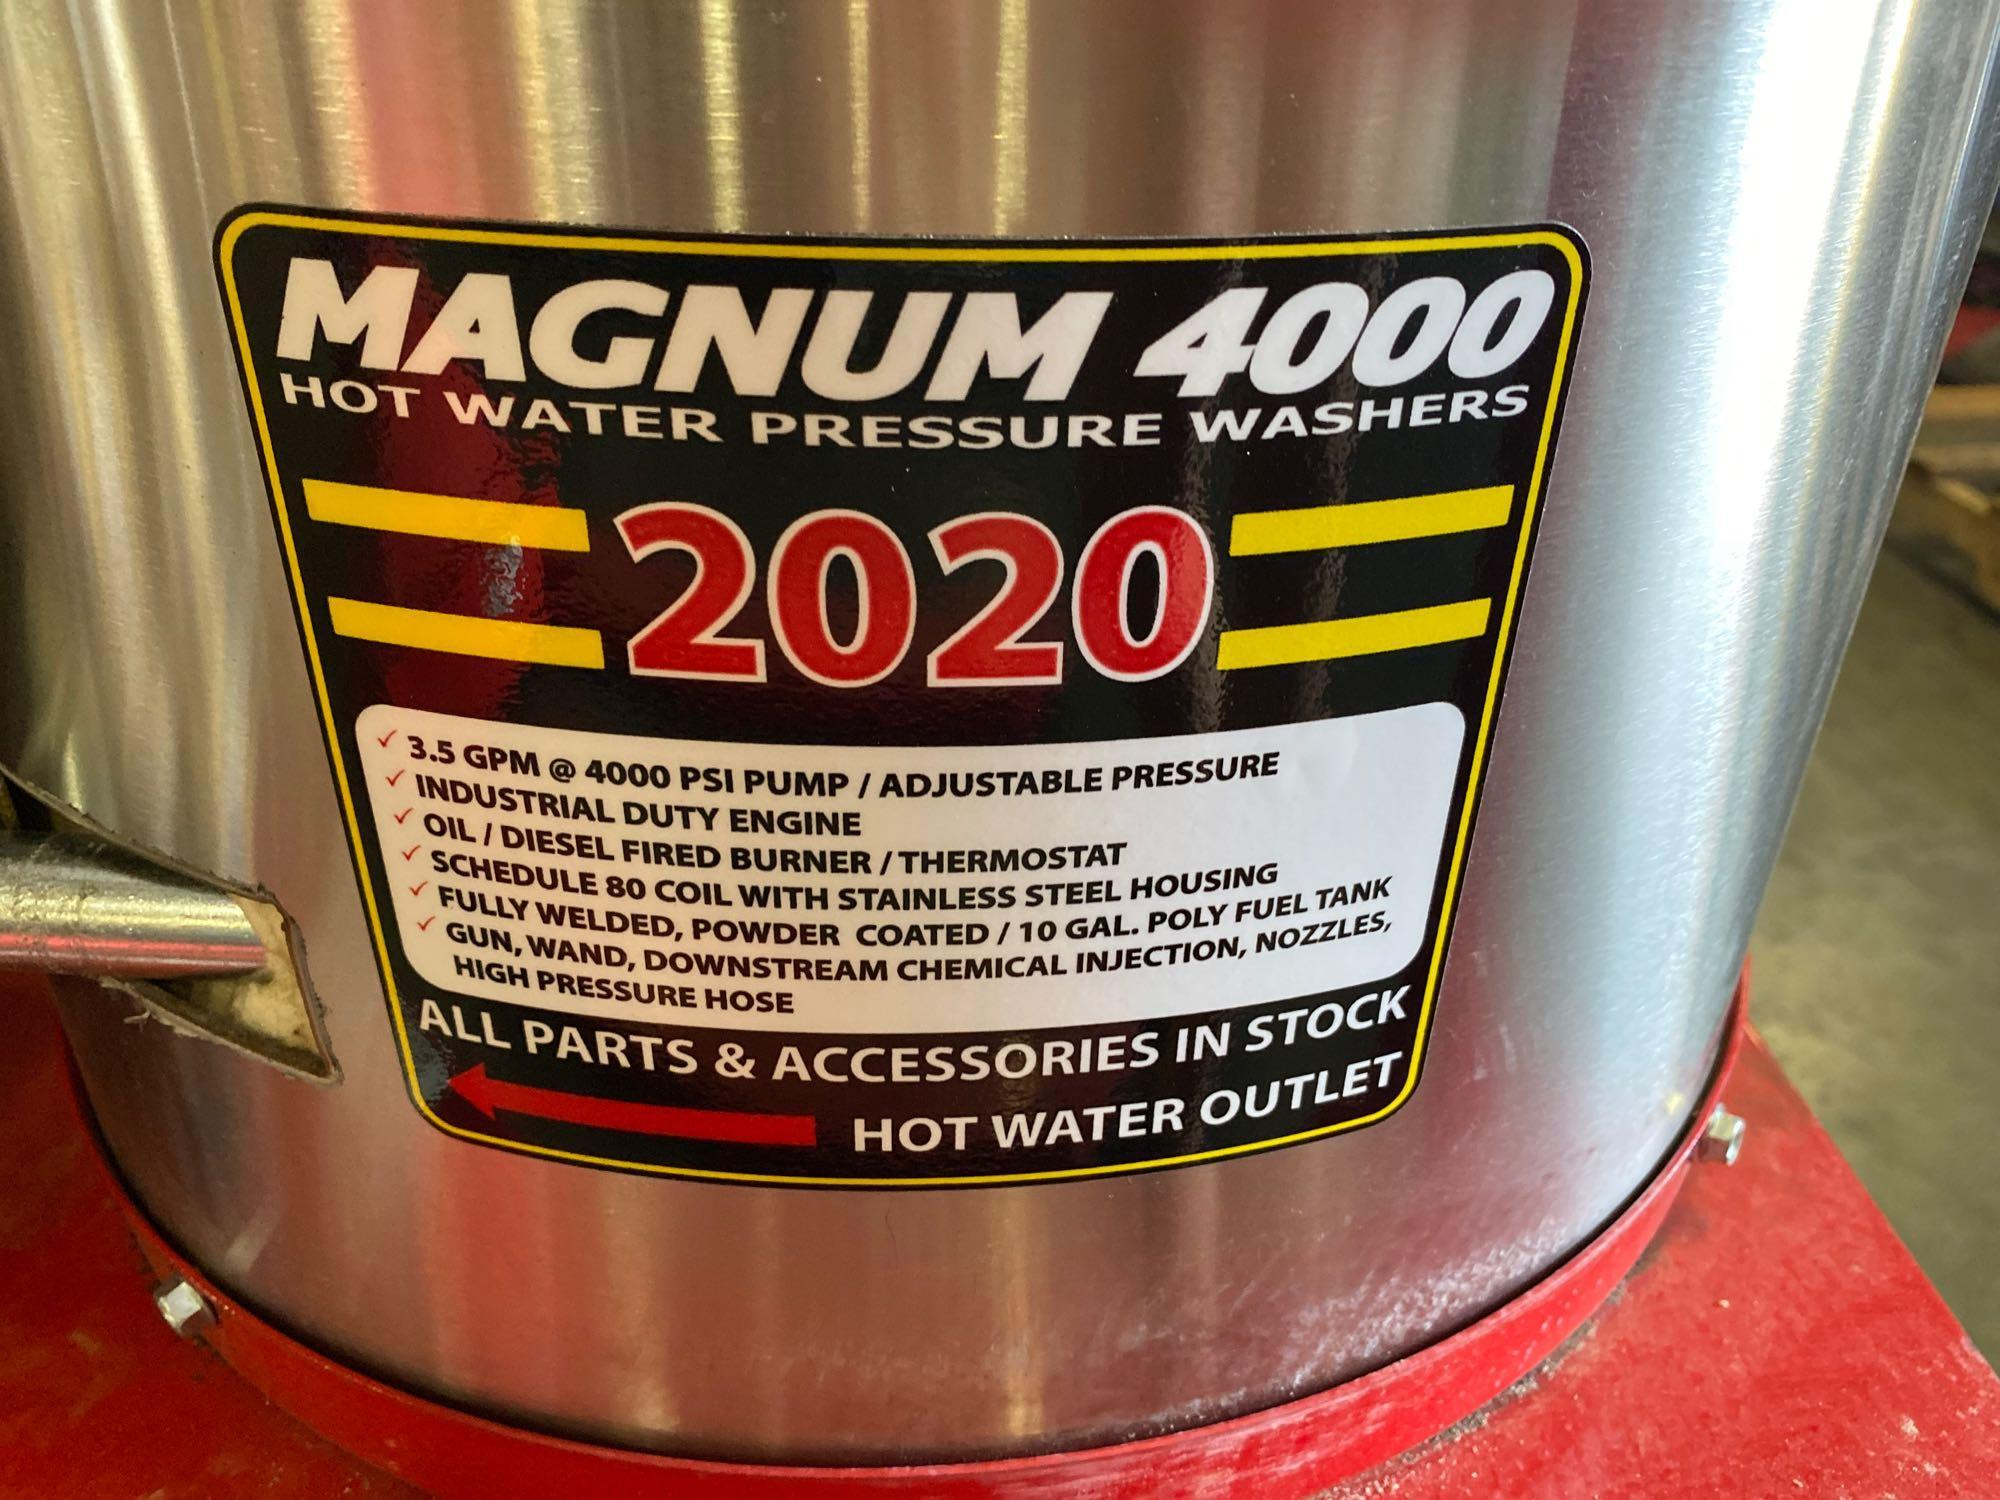 NEW/UNUSED 2020 MAGNUM 4000 HEATED PRESSURE WASHER, ELECTRIC START - Image 6 of 6